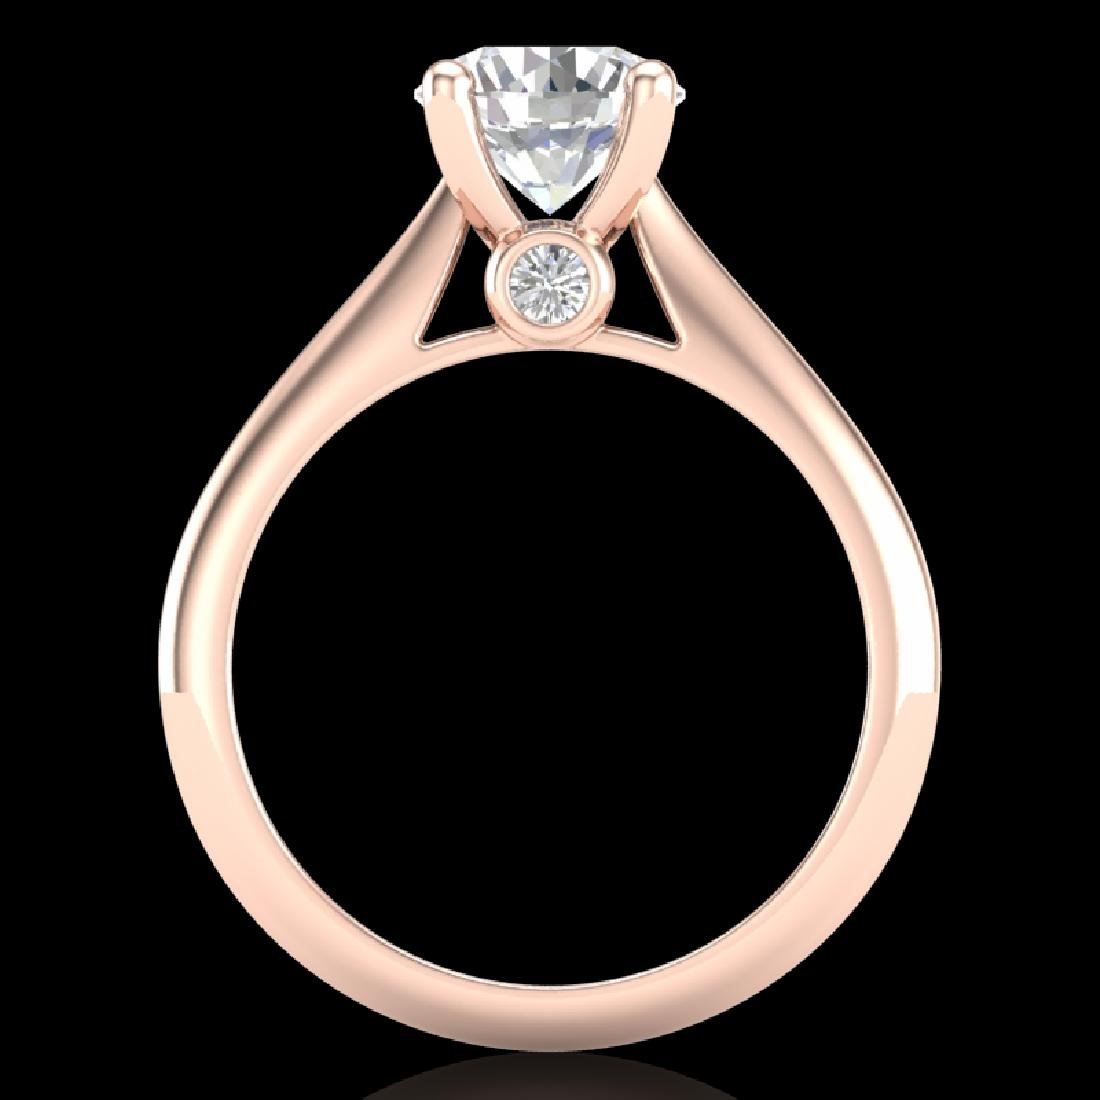 1.6 CTW VS/SI Diamond Art Deco Ring 18K Rose Gold - 2